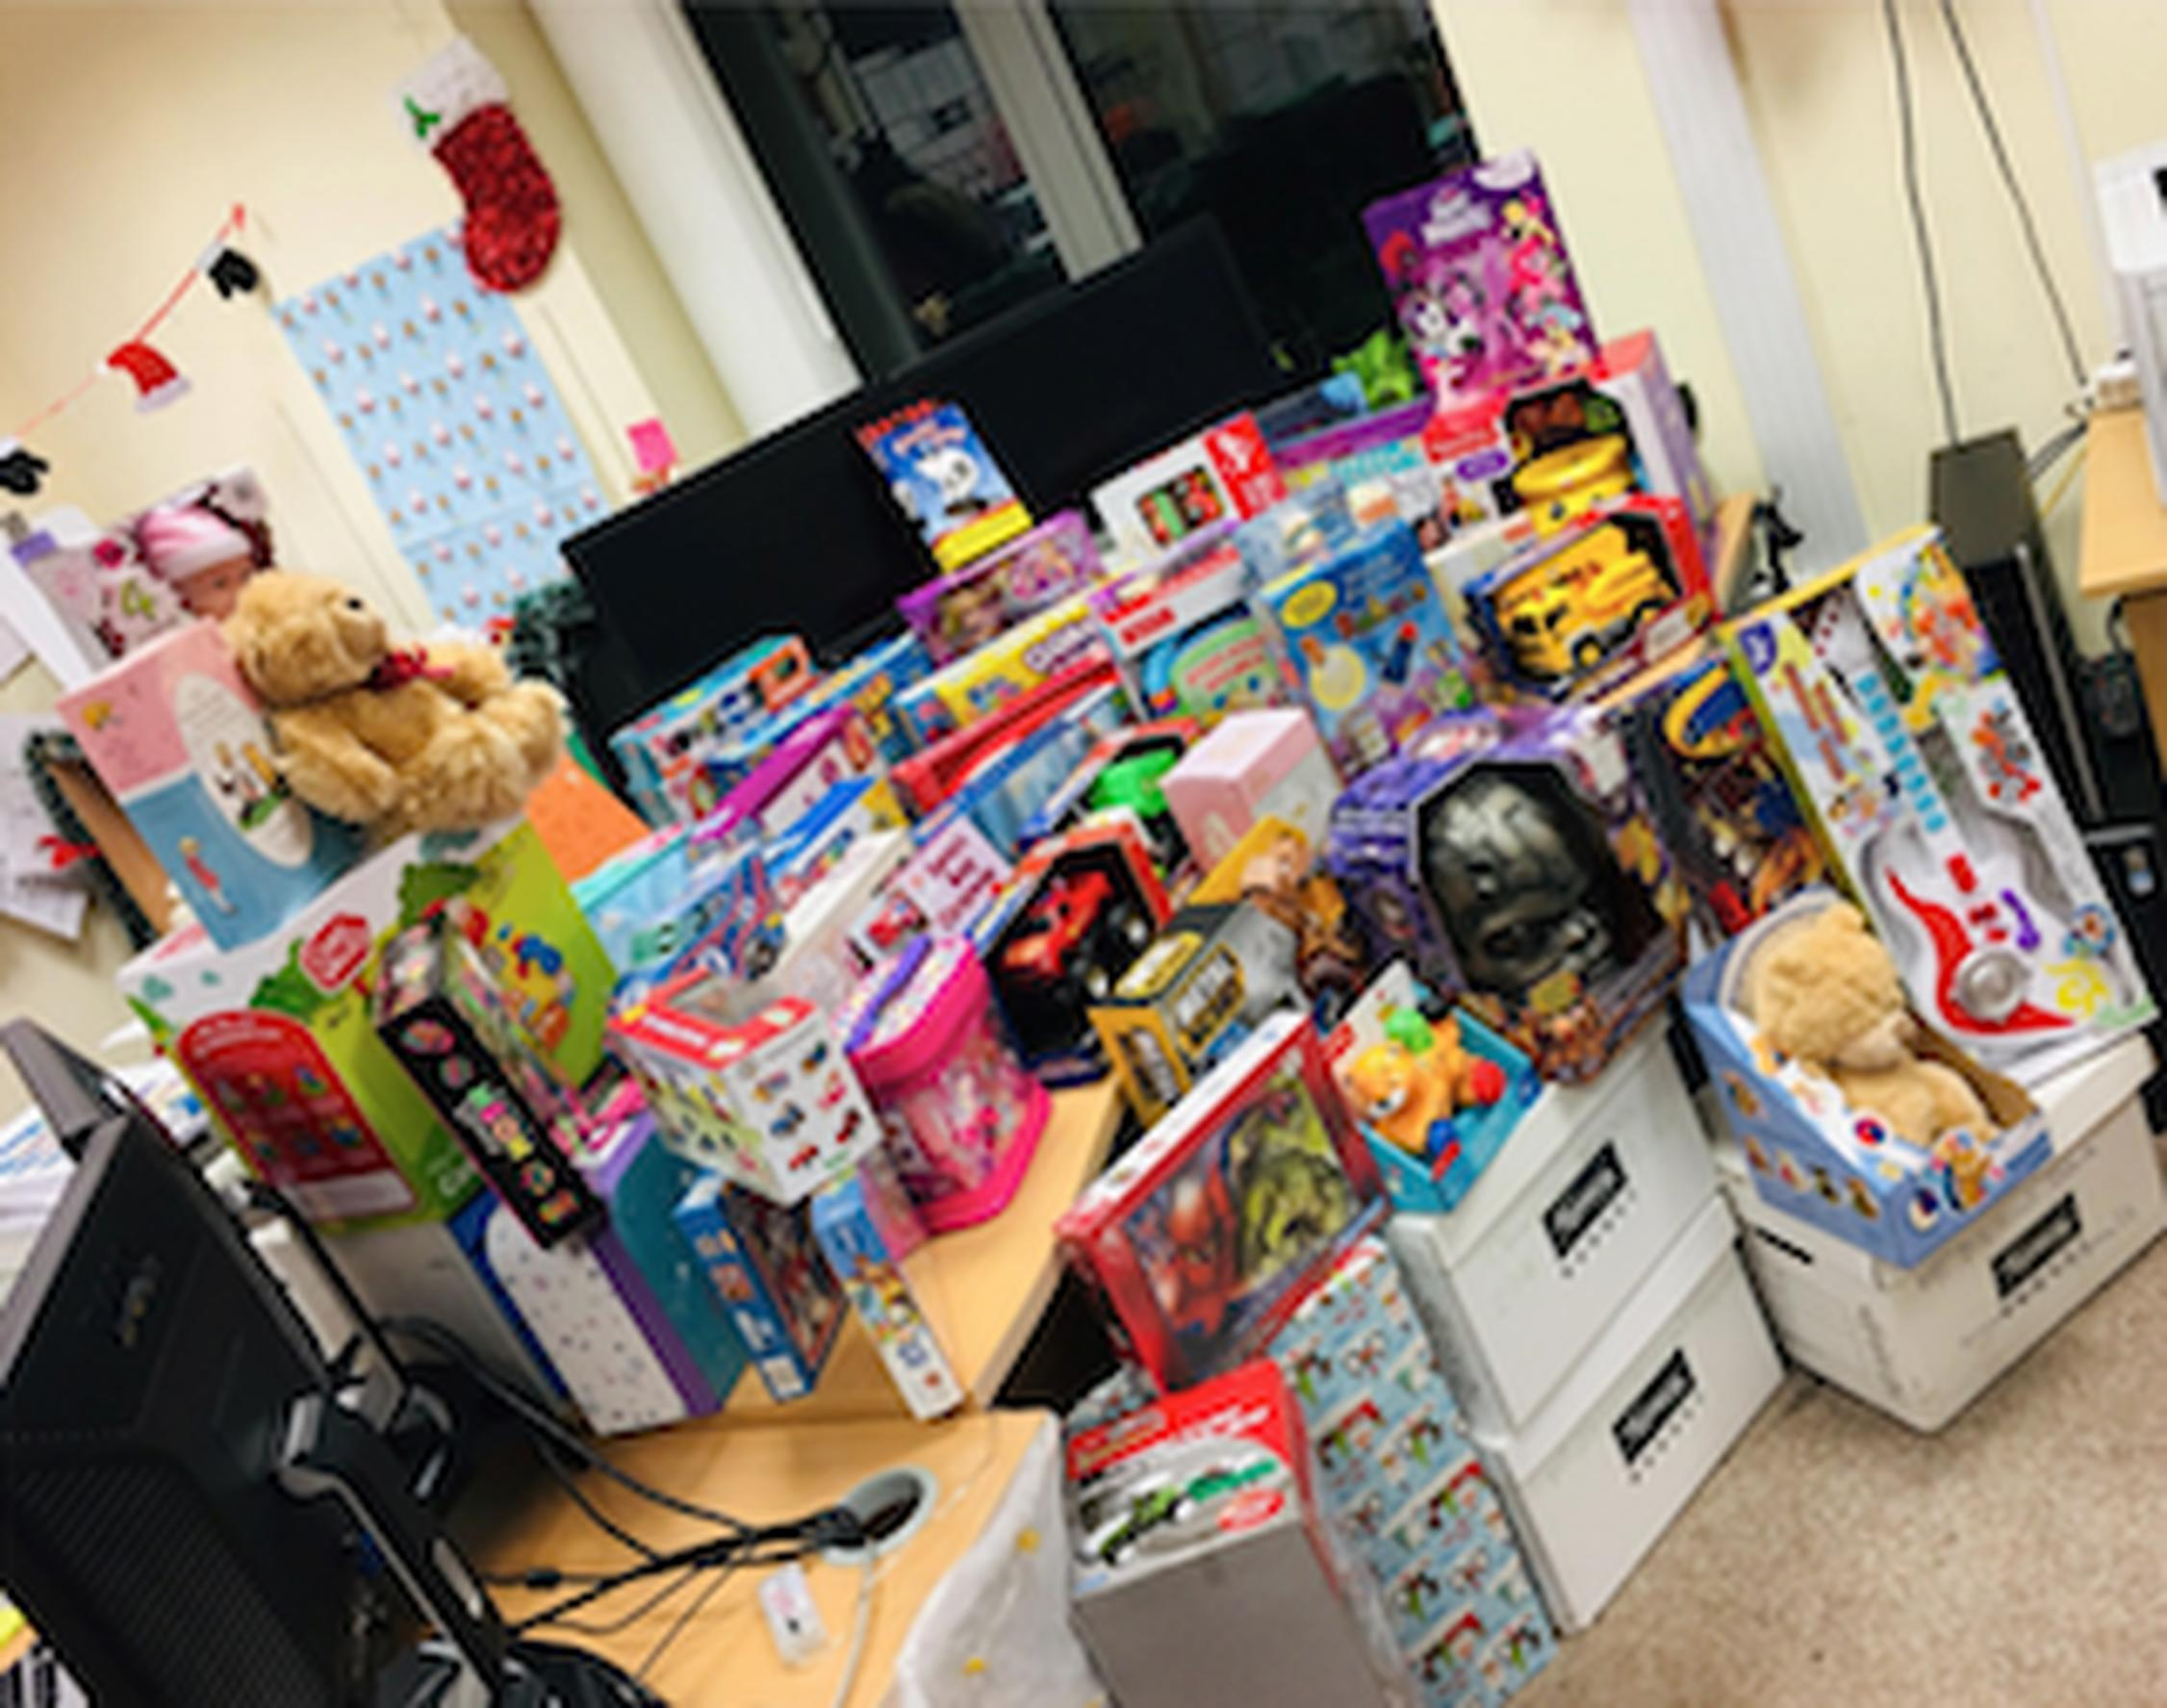 The toys collected by APCOA staff